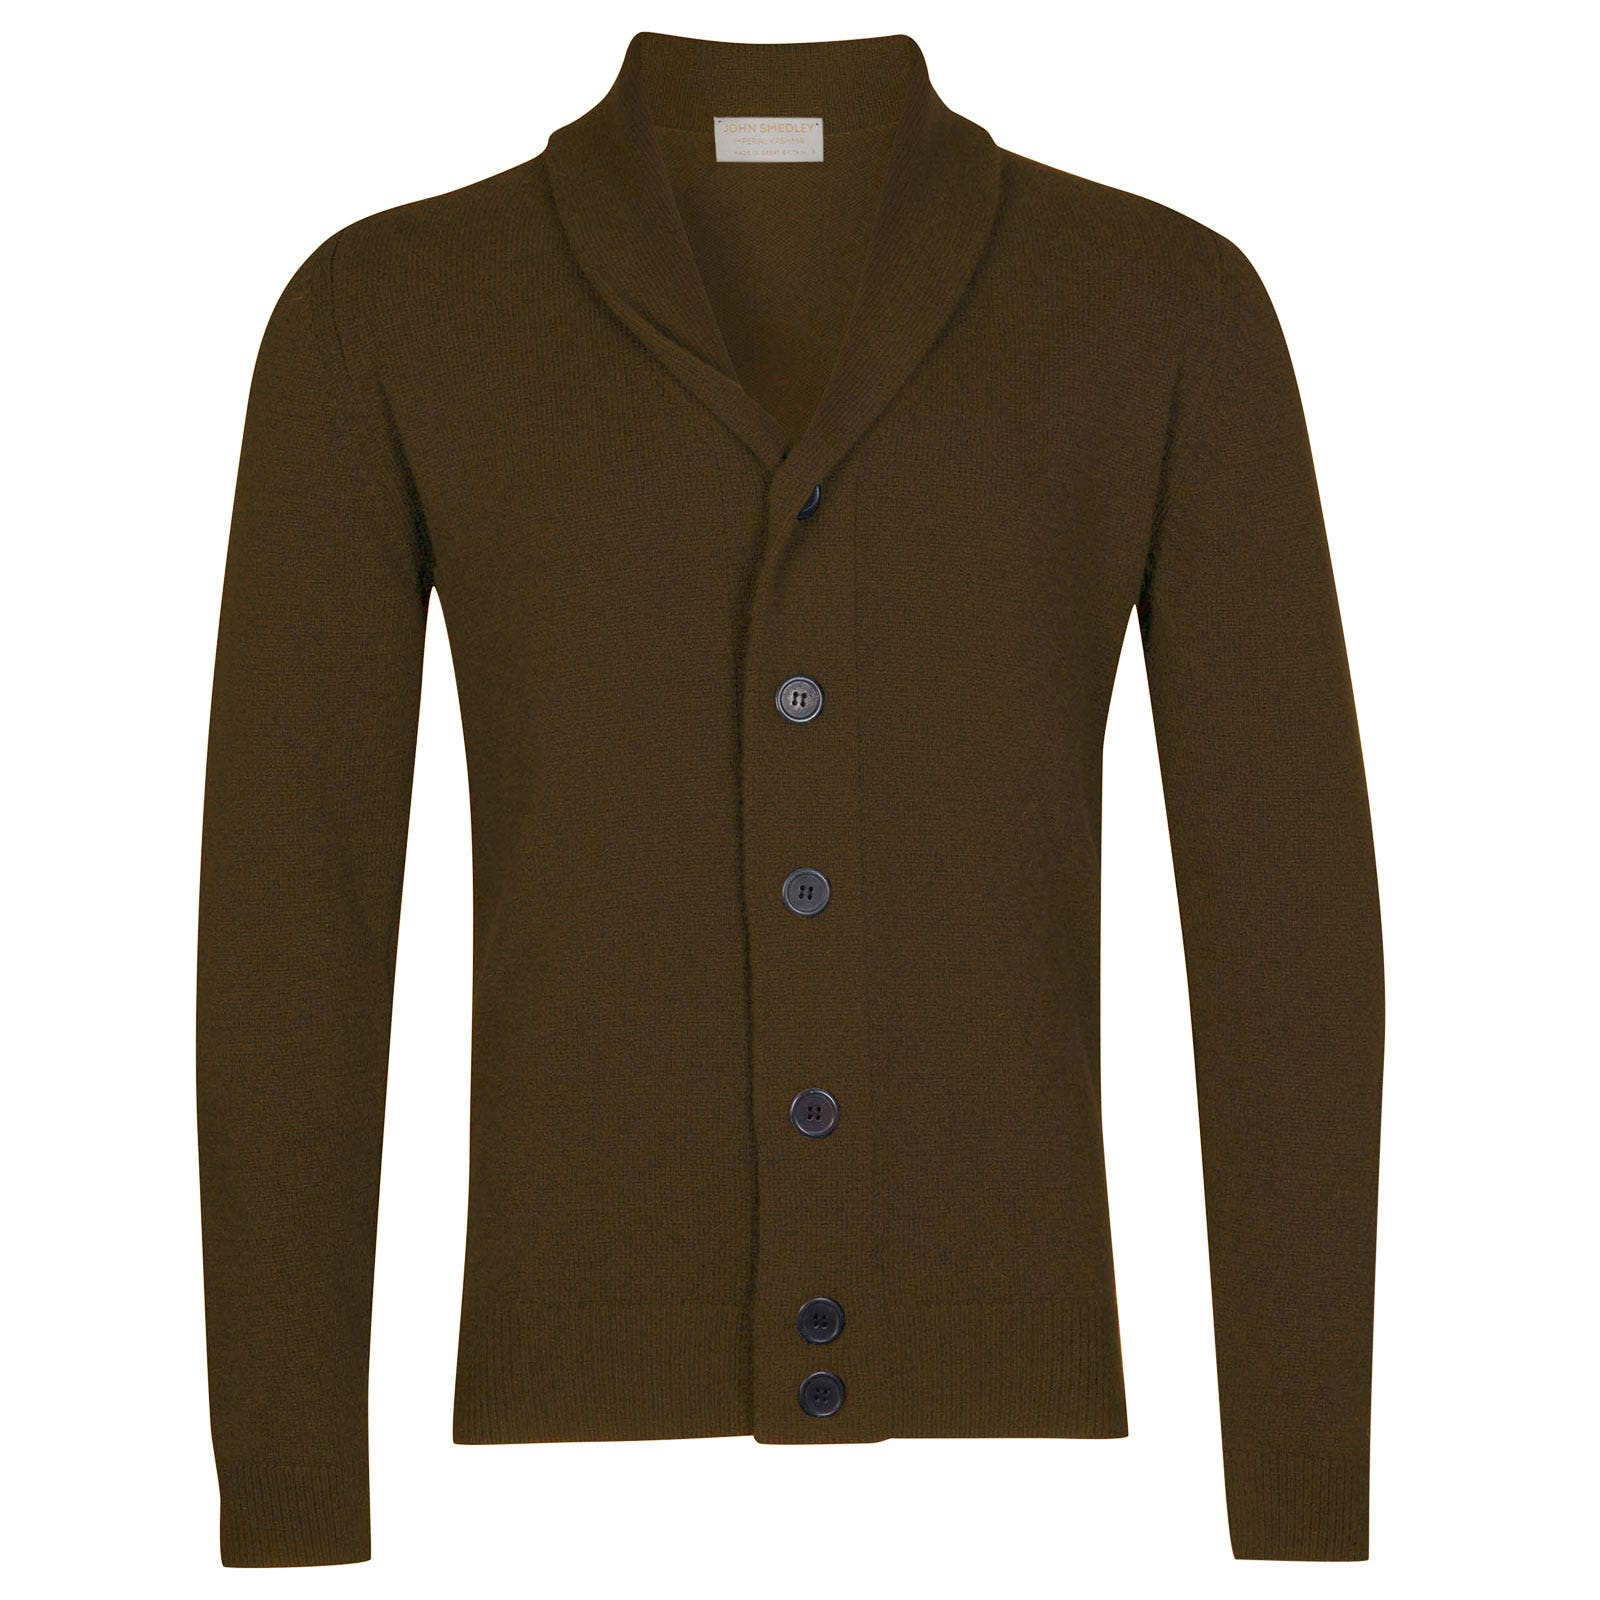 John Smedley patterson Wool and Cashmere Jacket in Kielder Green-S